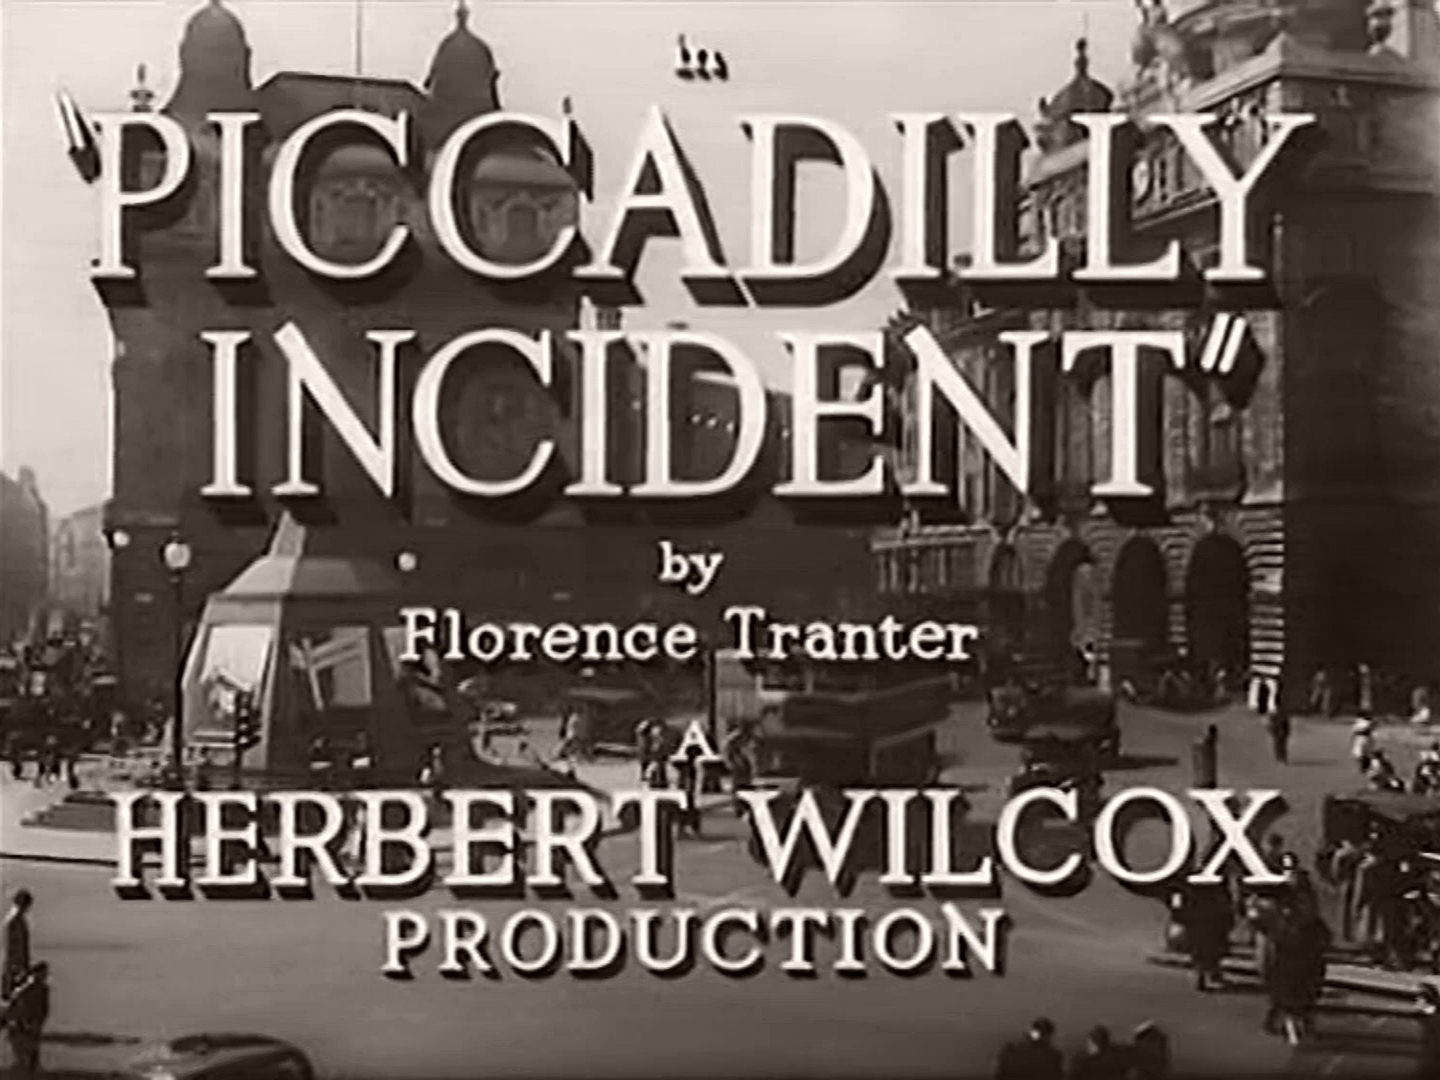 Main title from Piccadilly Incident (1946) (4). By Florence Tranter. A Herbert Wilcox production